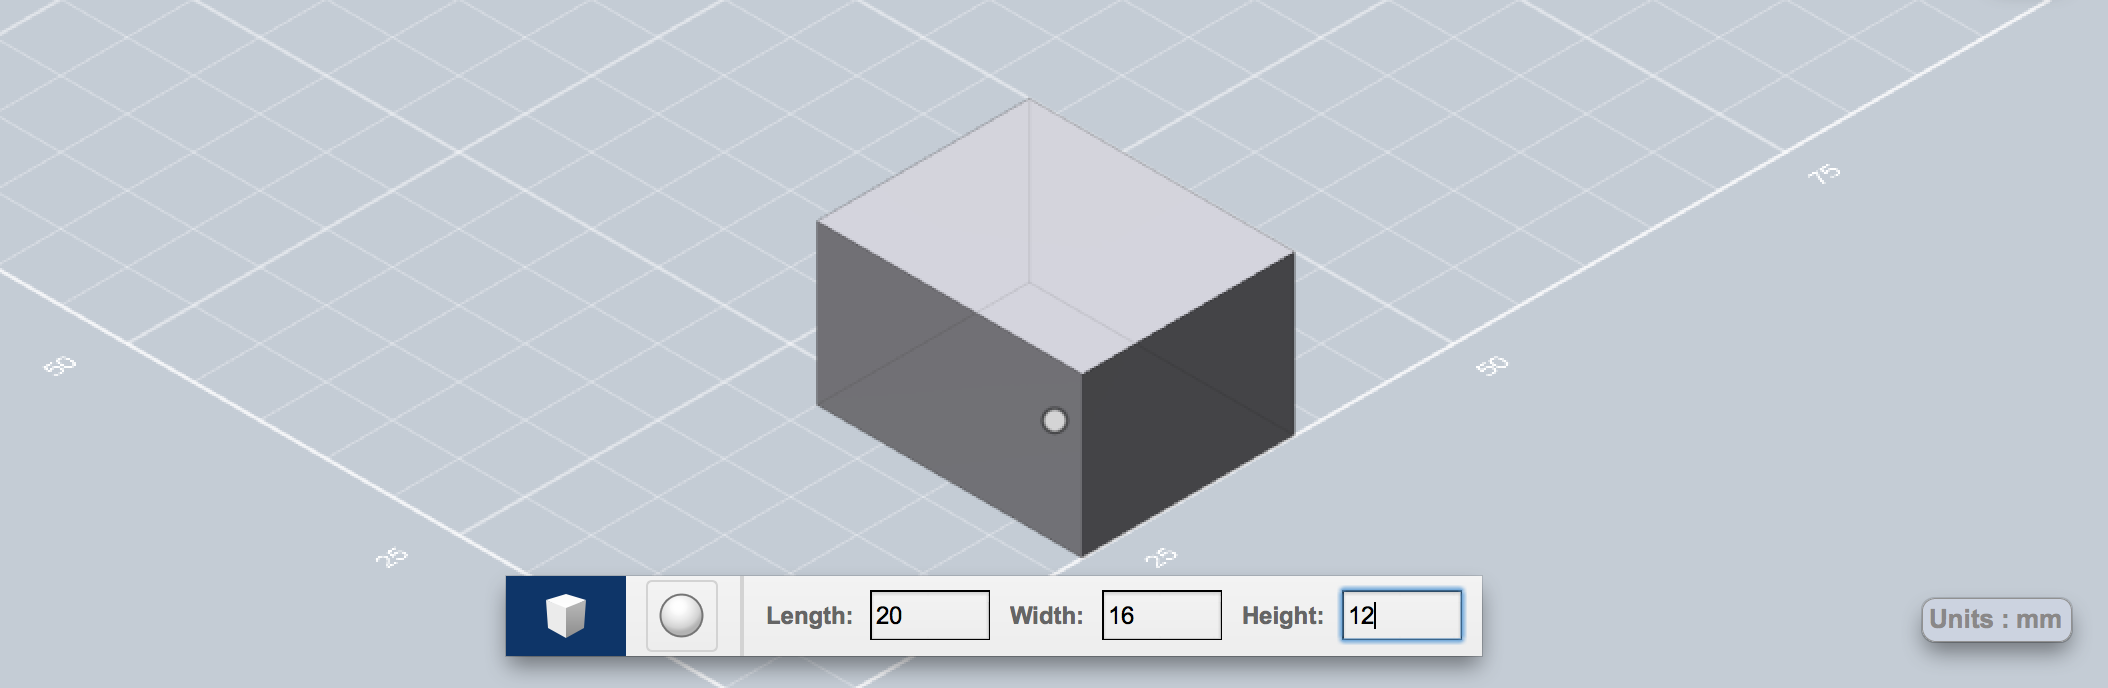 Autodesk 123D Design - 3D Modeling  enclosures for DIY Projects